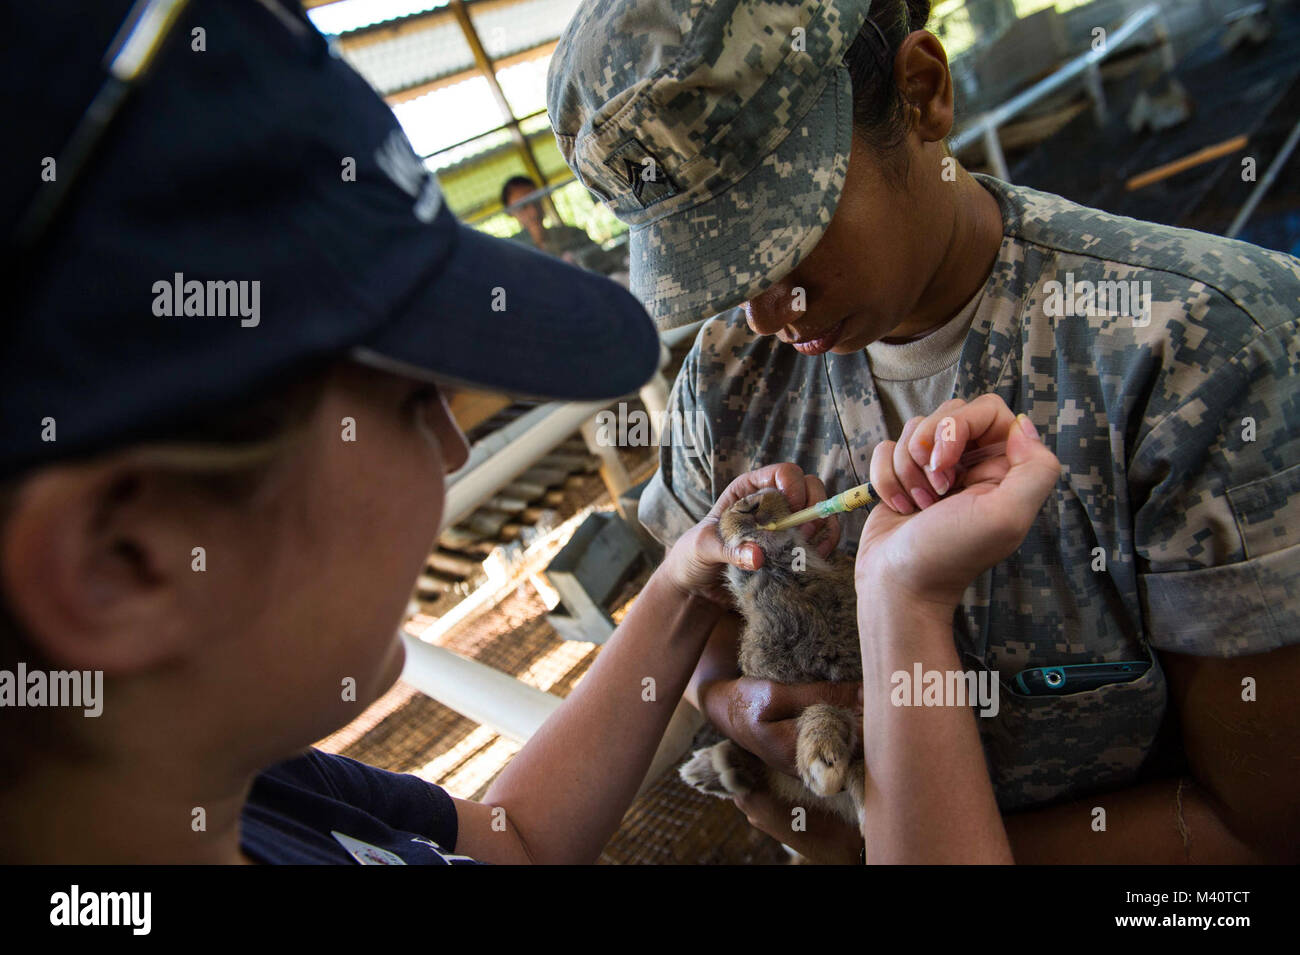 150805-N-NK134-300 PORTSMOUTH, Dominica (Aug. 5, 2015) - Army Sgt. Janina Alaniz, a native of North Bergen, N.J., - Stock Image